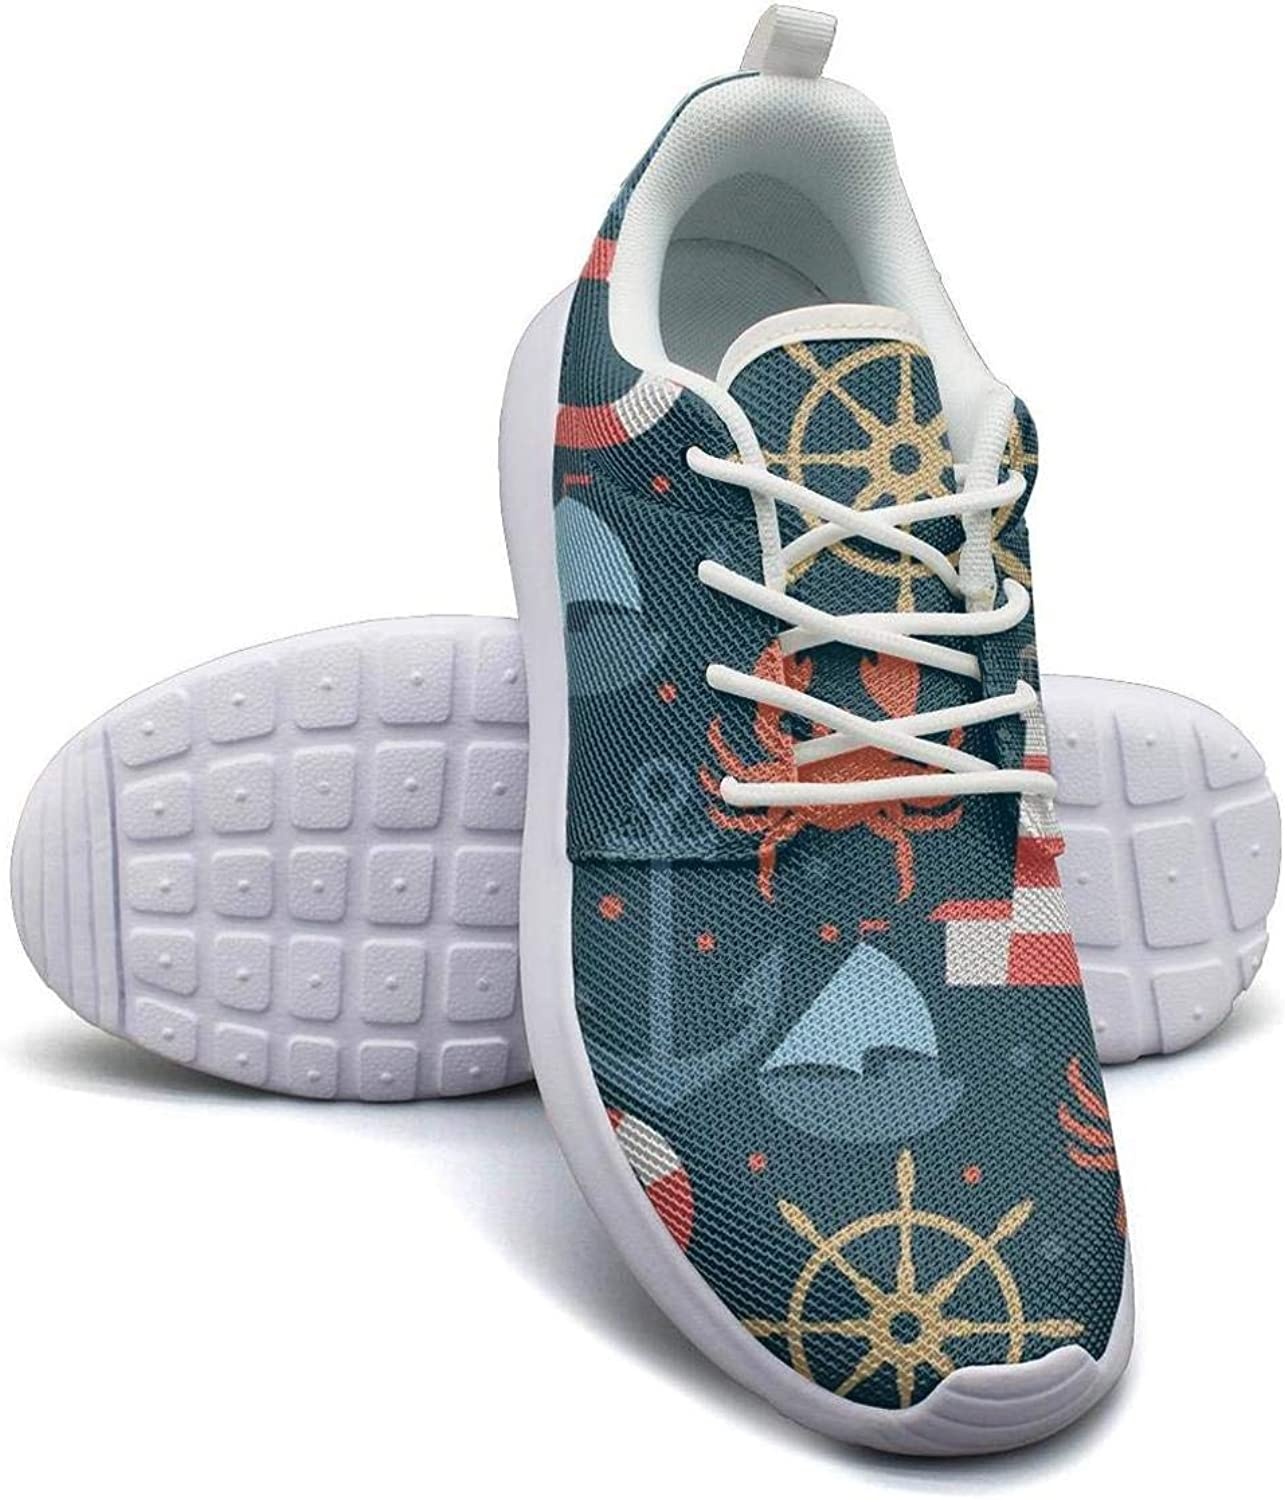 Gjsonmv Navy Sea Lighthouse Crab Anchor Sailboat mesh Lightweight shoes Women Casual Sports Sneakers shoes